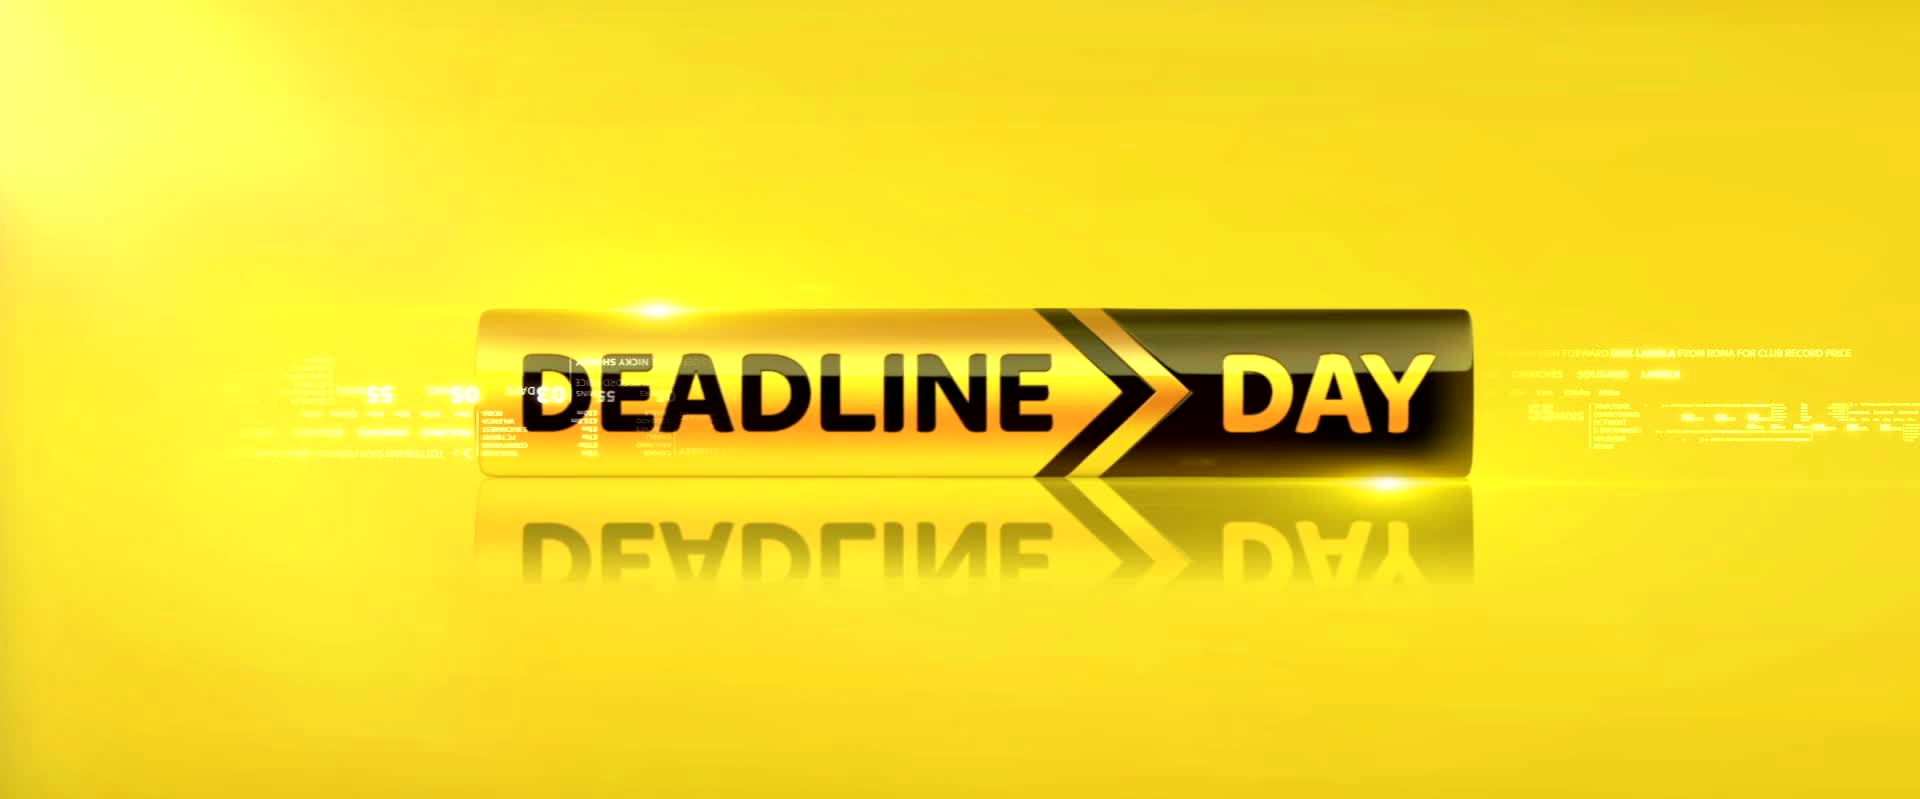 5 premier league players who need a deadline day move